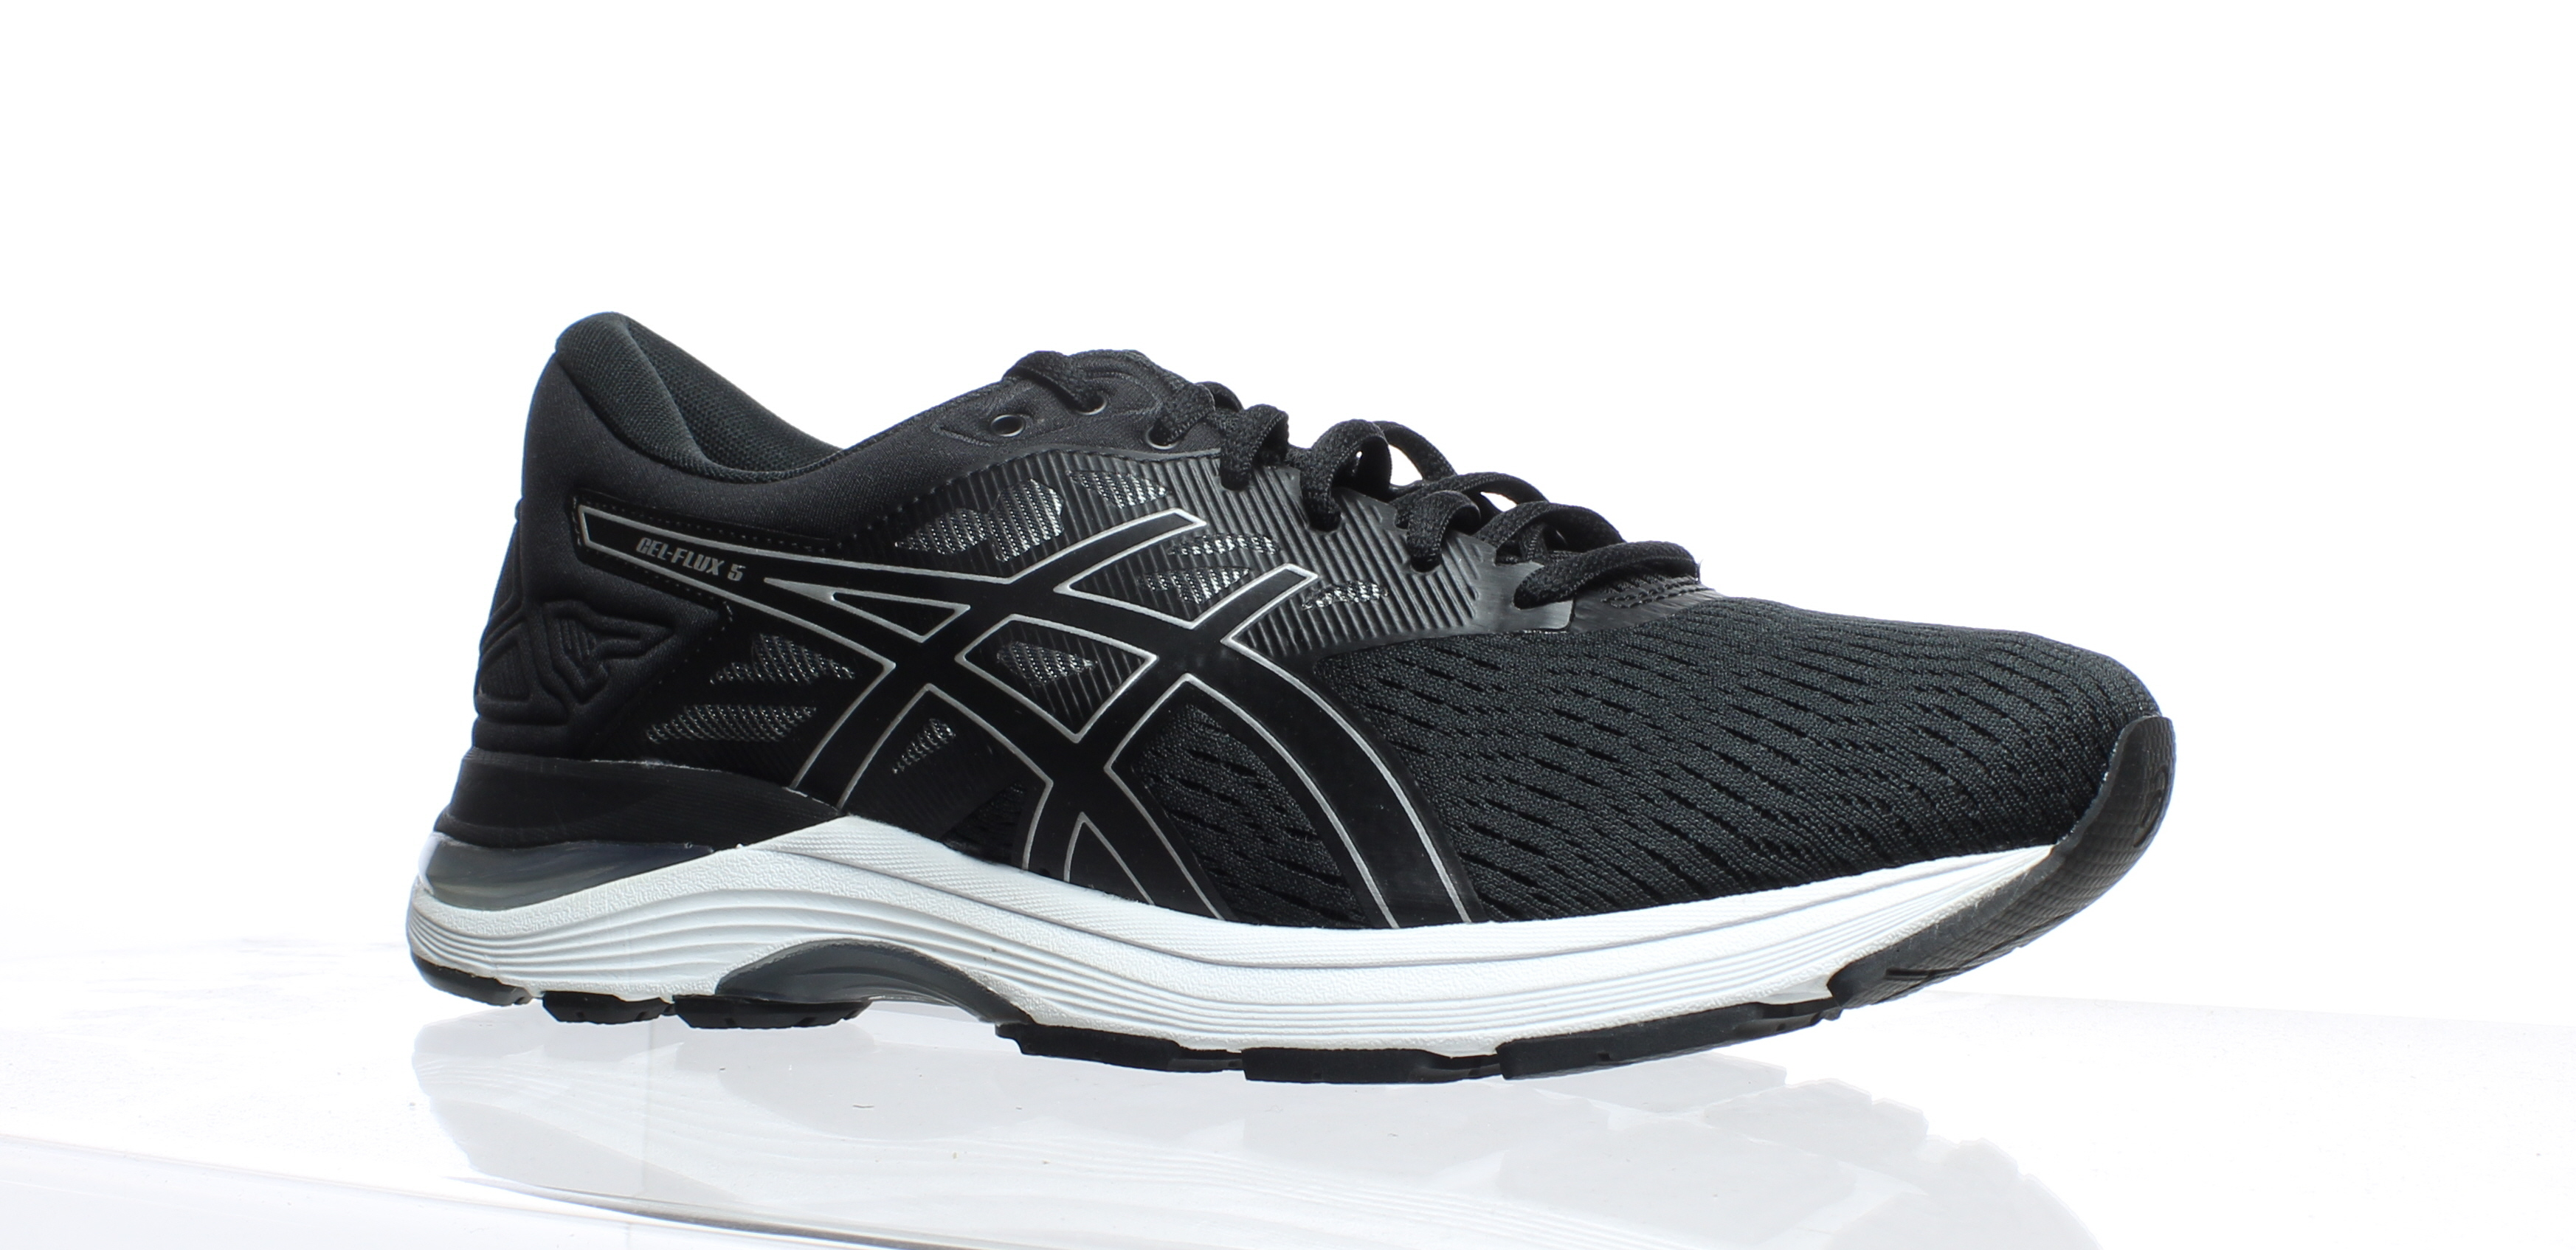 asics running trainers mens size 9